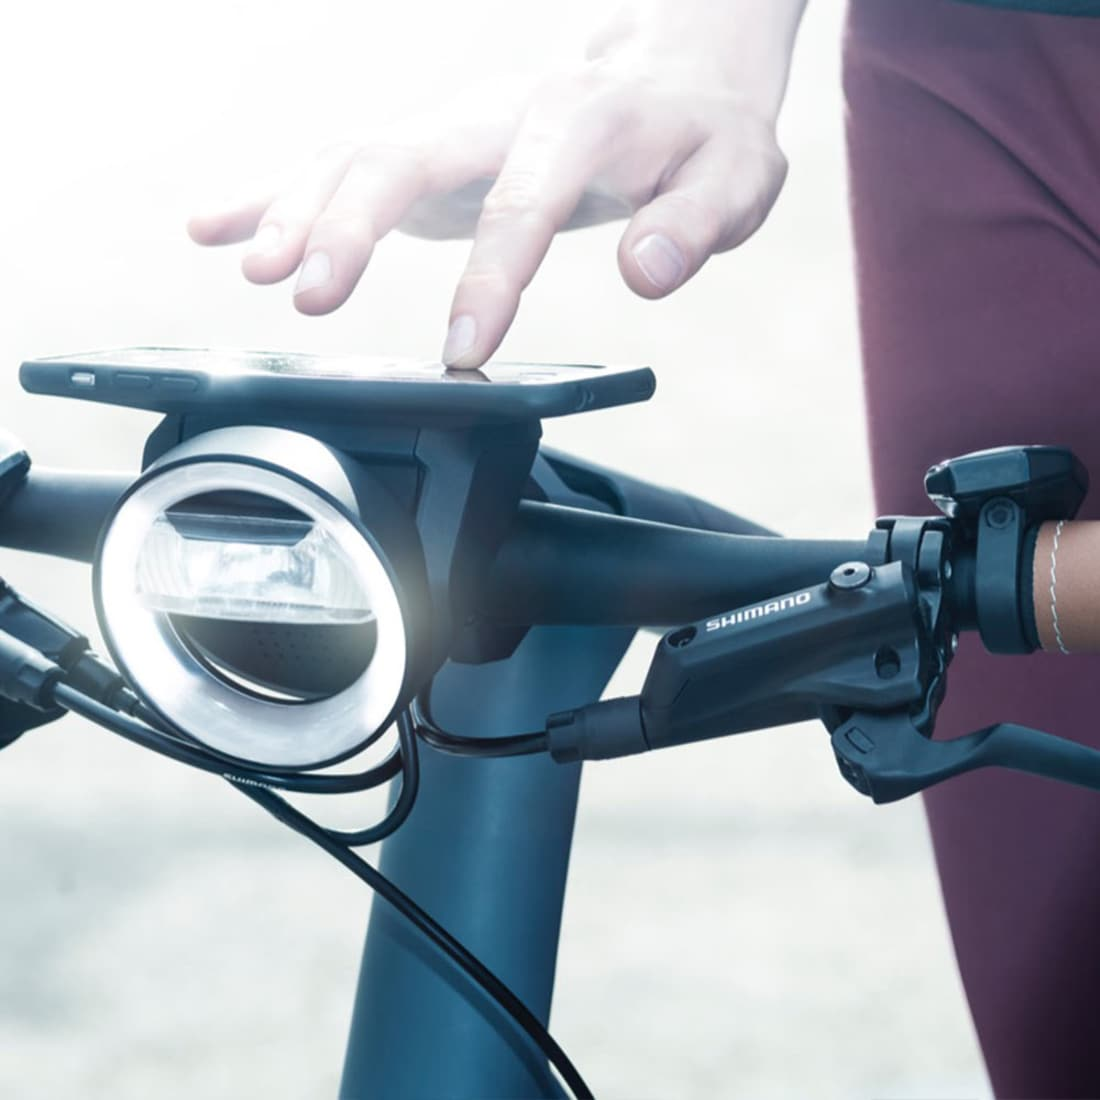 COBI Bike das smarte Connected Biking System